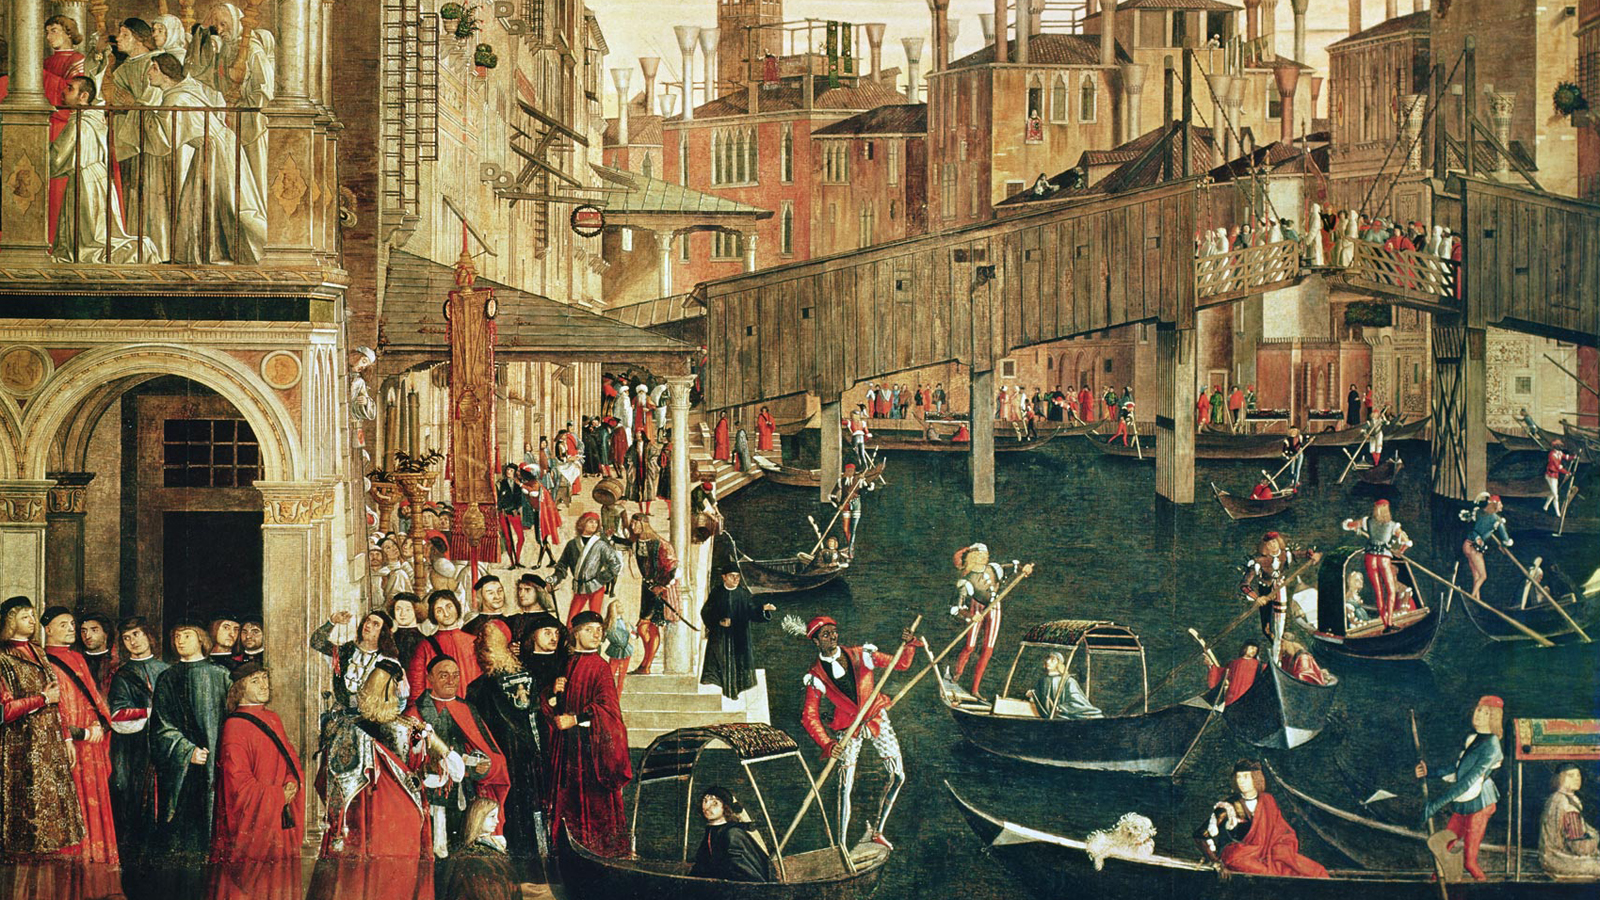 Strangers in the city: the cosmopolitan nature of 16th-century Venice